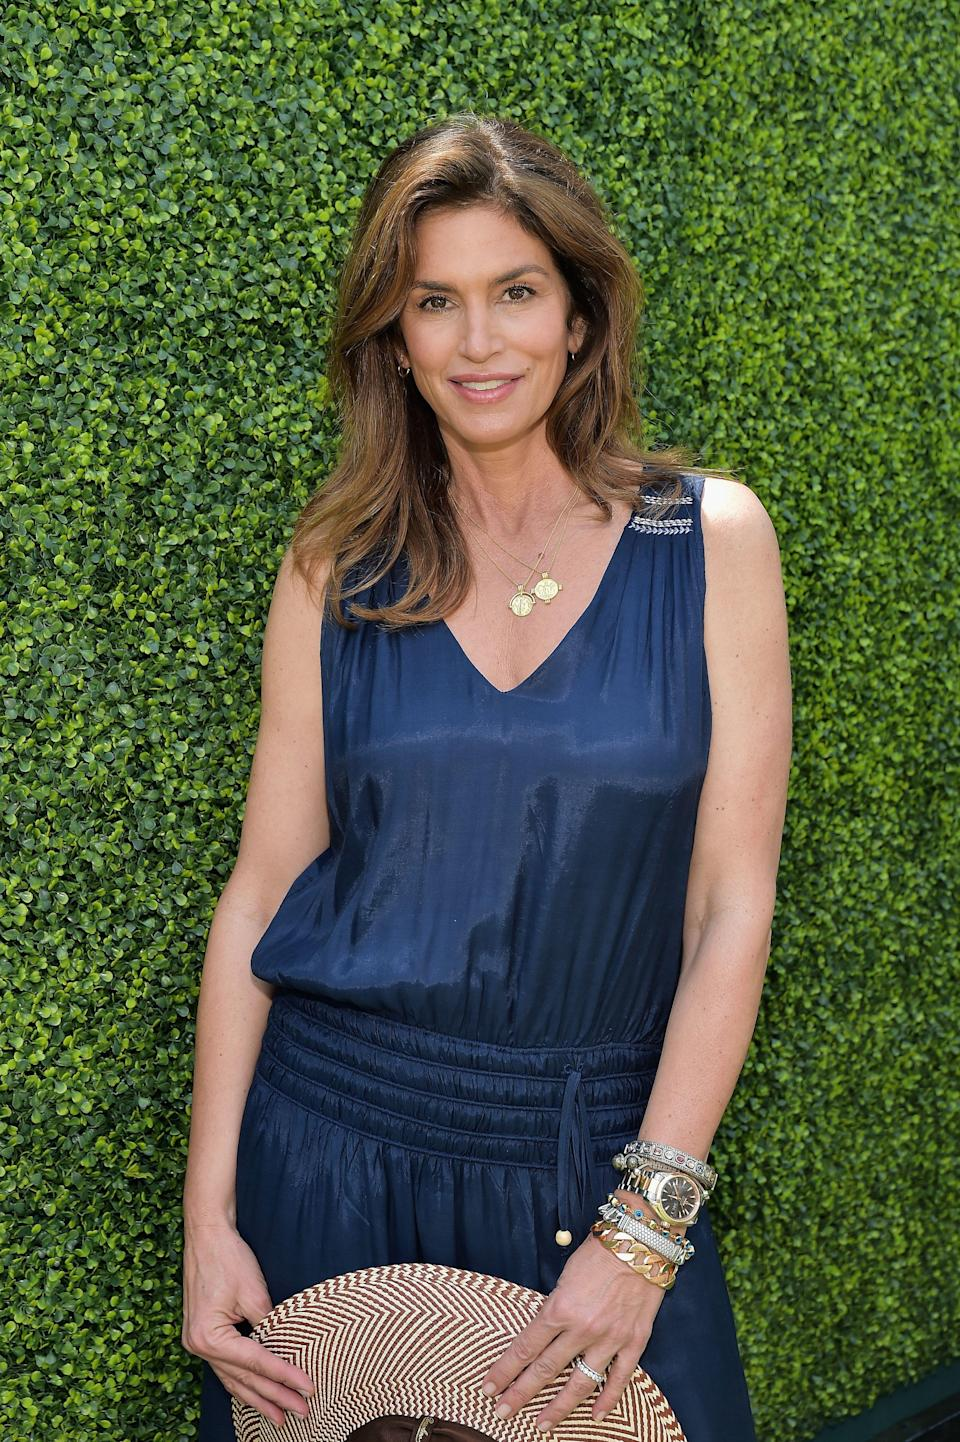 """<p>Scrolling through <a href=""""https://www.instagram.com/cindycrawford/?hl=en"""" rel=""""nofollow noopener"""" target=""""_blank"""" data-ylk=""""slk:Cindy Crawford's Instagram feed"""" class=""""link rapid-noclick-resp"""">Cindy Crawford's Instagram feed</a> is like taking a master class in how to make 54 look every bit as fun, fit, and fab as ever.</p><p>So, how has the OG supermodel managed to maintain her <a href=""""https://www.womenshealthmag.com/uk/health/"""" rel=""""nofollow noopener"""" target=""""_blank"""" data-ylk=""""slk:health"""" class=""""link rapid-noclick-resp"""">health</a> and <a href=""""https://www.womenshealthmag.com/uk/fitness/"""" rel=""""nofollow noopener"""" target=""""_blank"""" data-ylk=""""slk:fitness"""" class=""""link rapid-noclick-resp"""">fitness</a> game this strong...for this long? Consistency. After all, it is the key to seeing (and keeping) any significant gains when it comes to your general well-being. On that front, it's clear that, for Cindy, a big part of maintaining balance is working out regularly, which she documents on her social media account. Her feed is peppered with images and videos of her breaking a sweat. So, what are Cindy's favourite forms of fitness? Read on to see how America's favourite supermodel stays fit these days. </p>"""